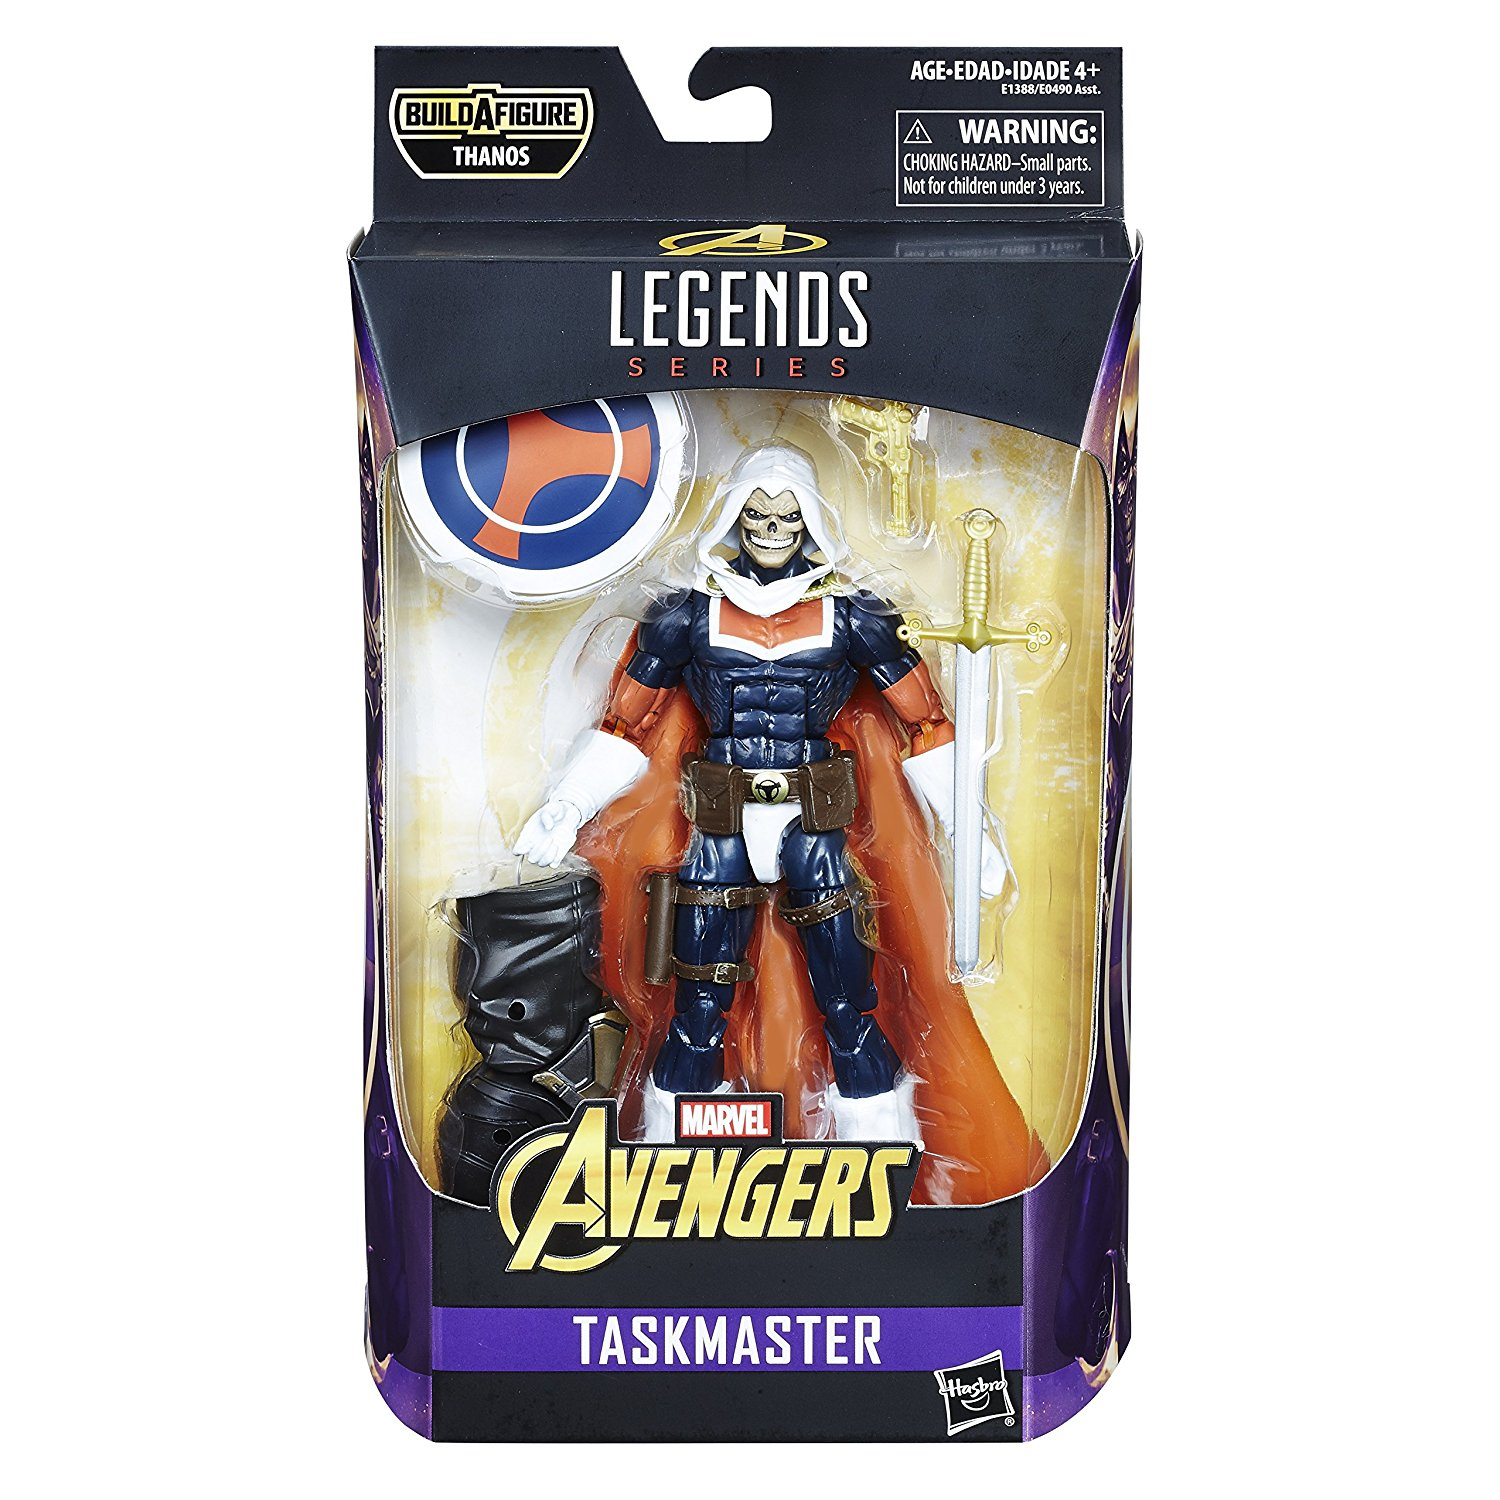 Avengers Marvel Legends Series - Taskmaster (6 inch)